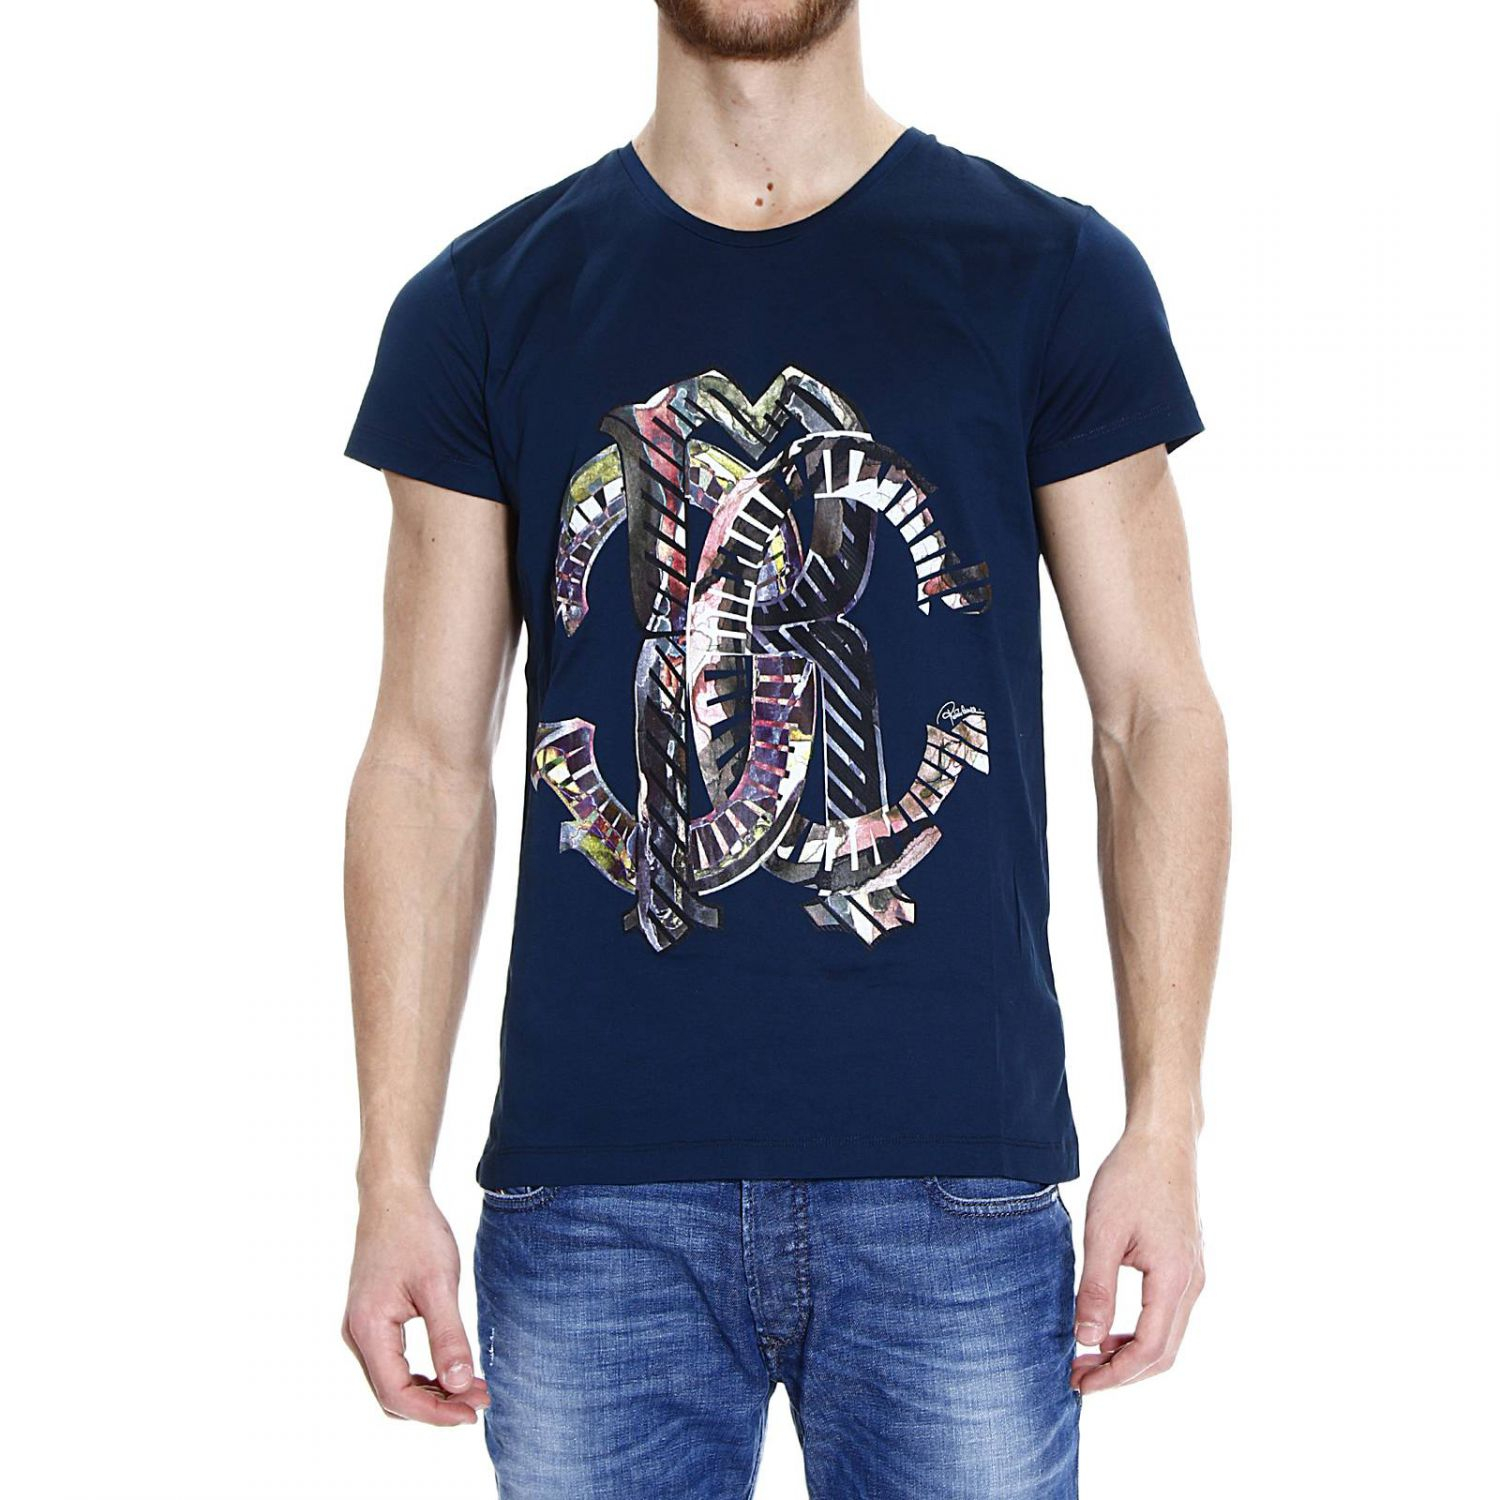 ROBERTO CAVALLI Mens T Shirt Tiger Graphic Tee Black & White Size Medium NWT See more like this. Roberto Cavalli T-Shirt Top Size M Glued & Velour Snakes Crew Neck FSTJD Brand New.